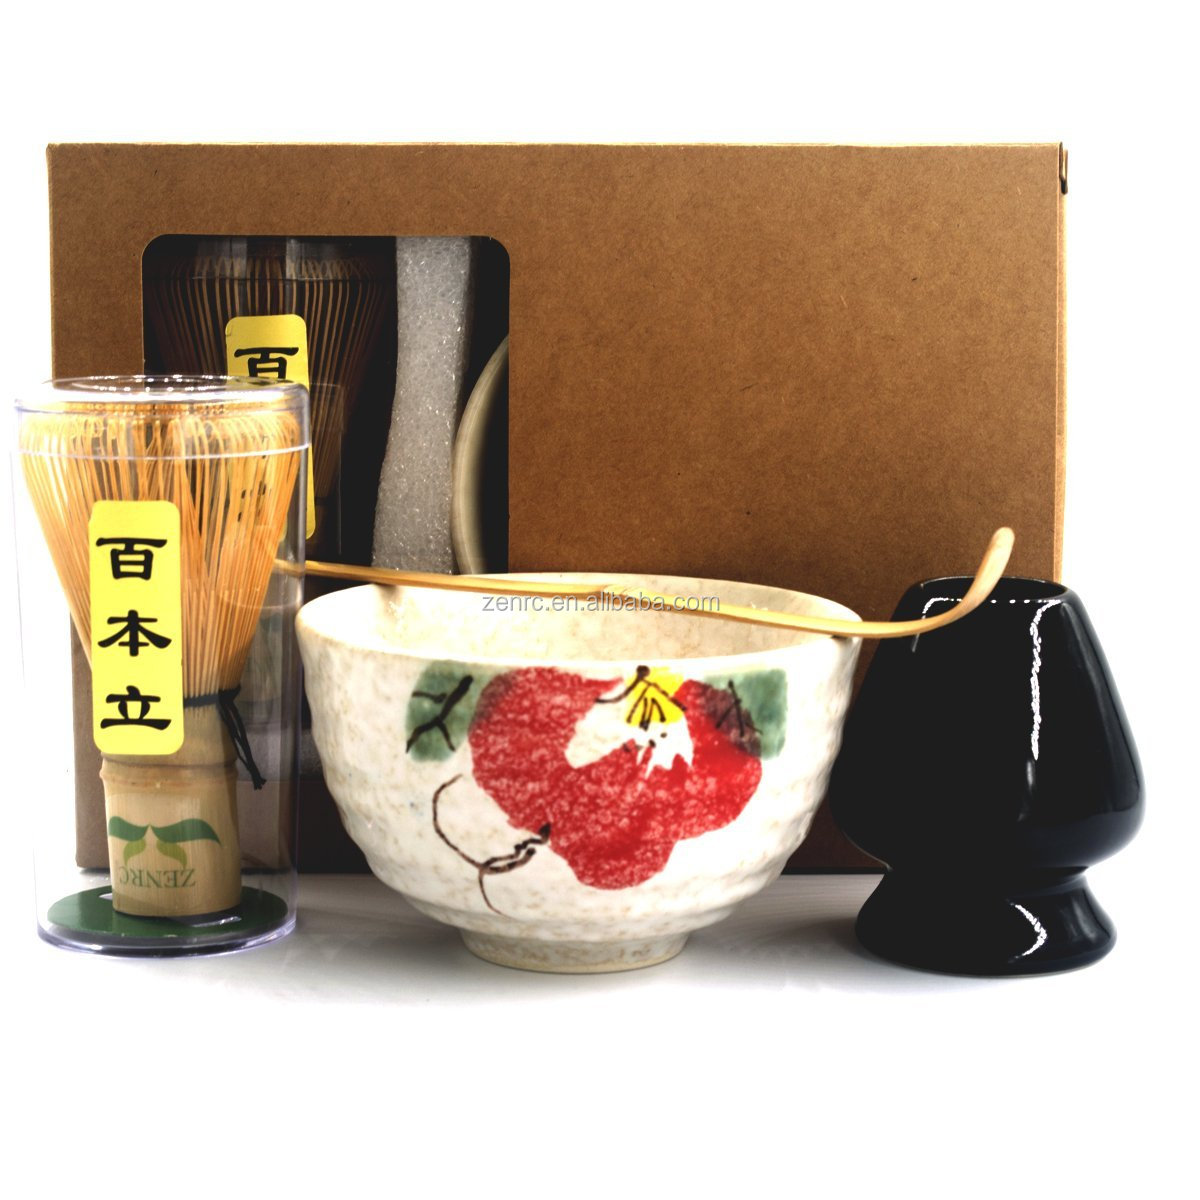 Pack of 5 Starter Kit of Matcha Bowl and Whisk Set with Gift Box